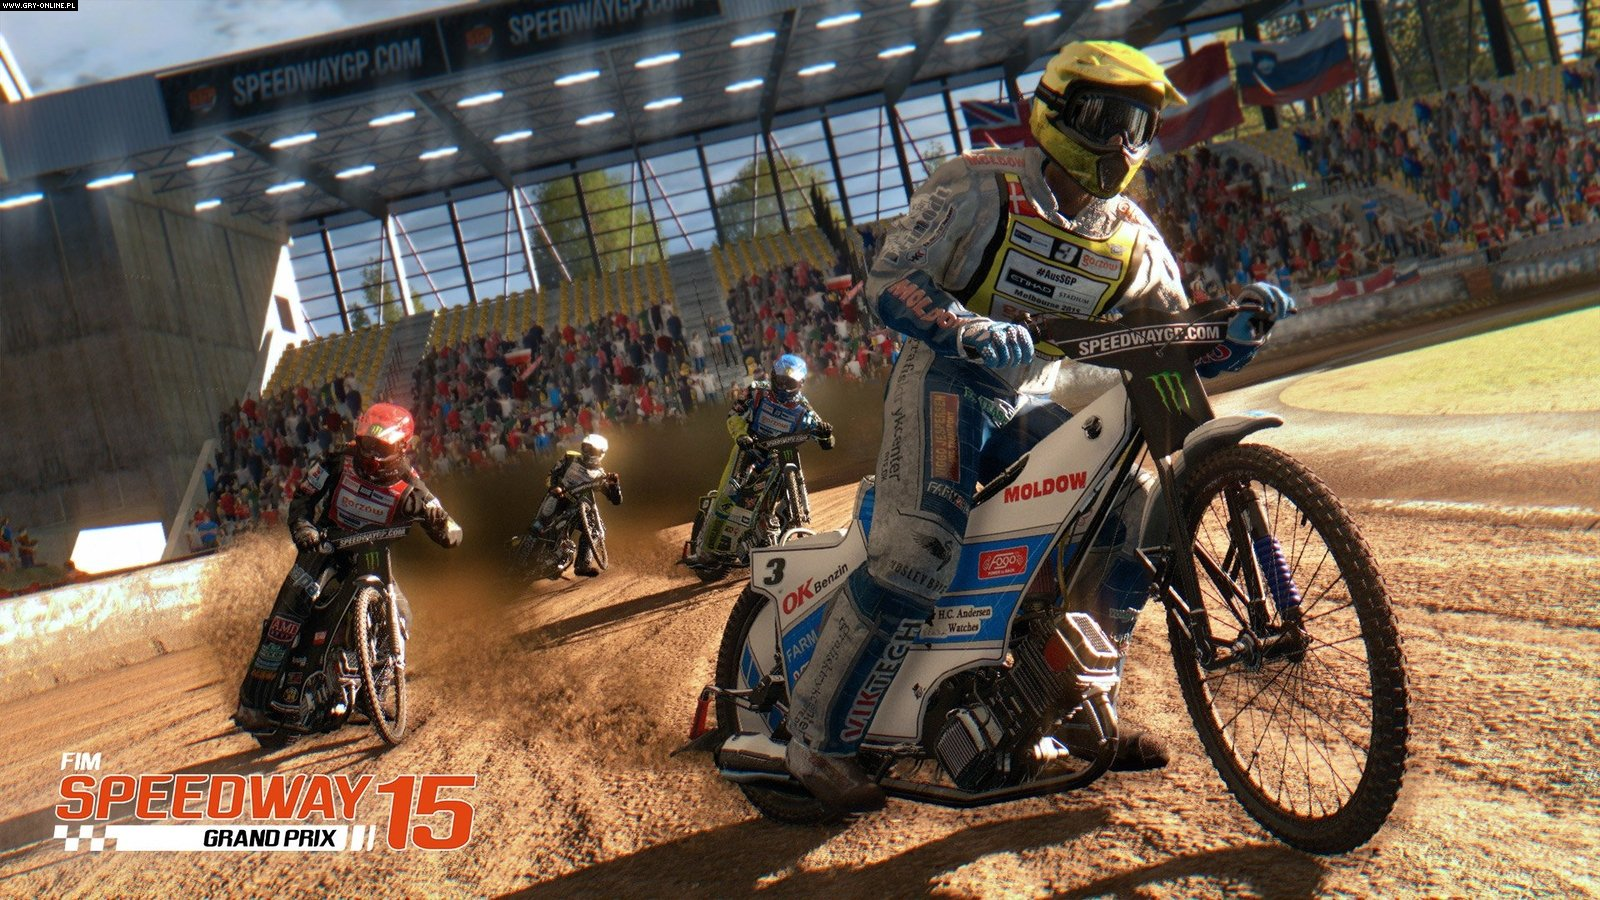 FIM Speedway Grand Prix 15 PC Gry Screen 3/10, Techland, Excalibur Publishing Limited